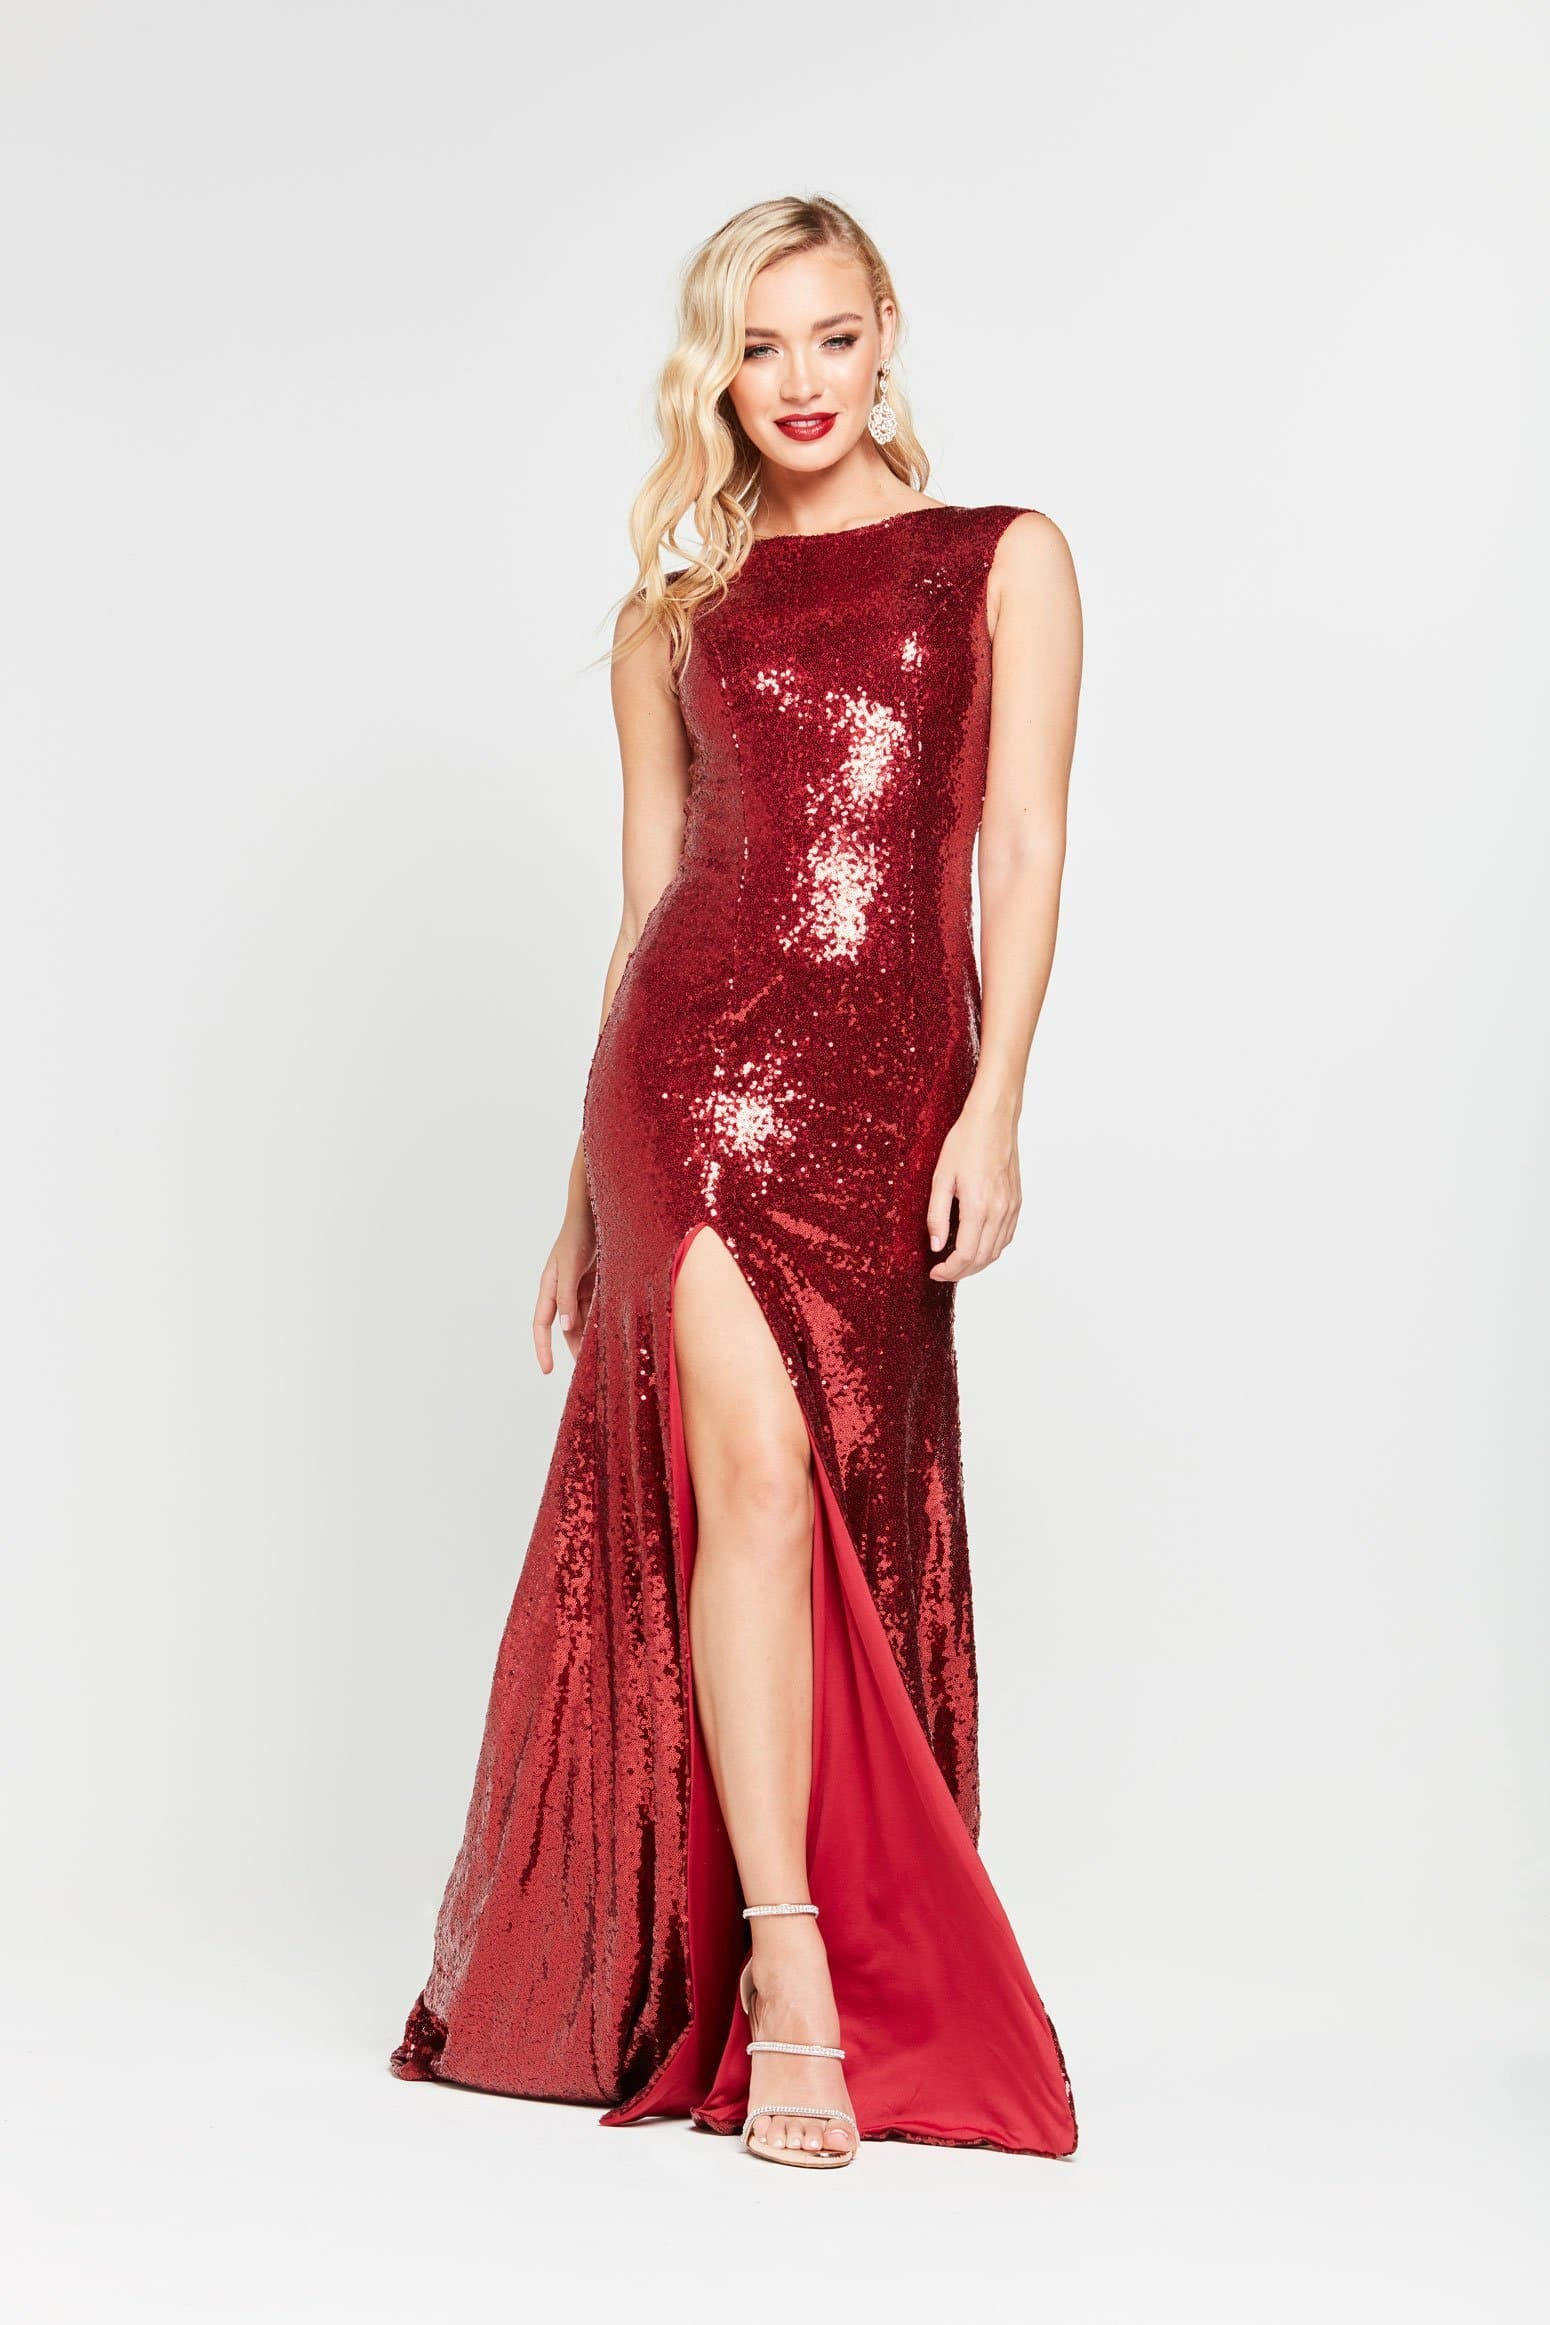 A&N Lila Elegant Sequinned Gown - Deep Red